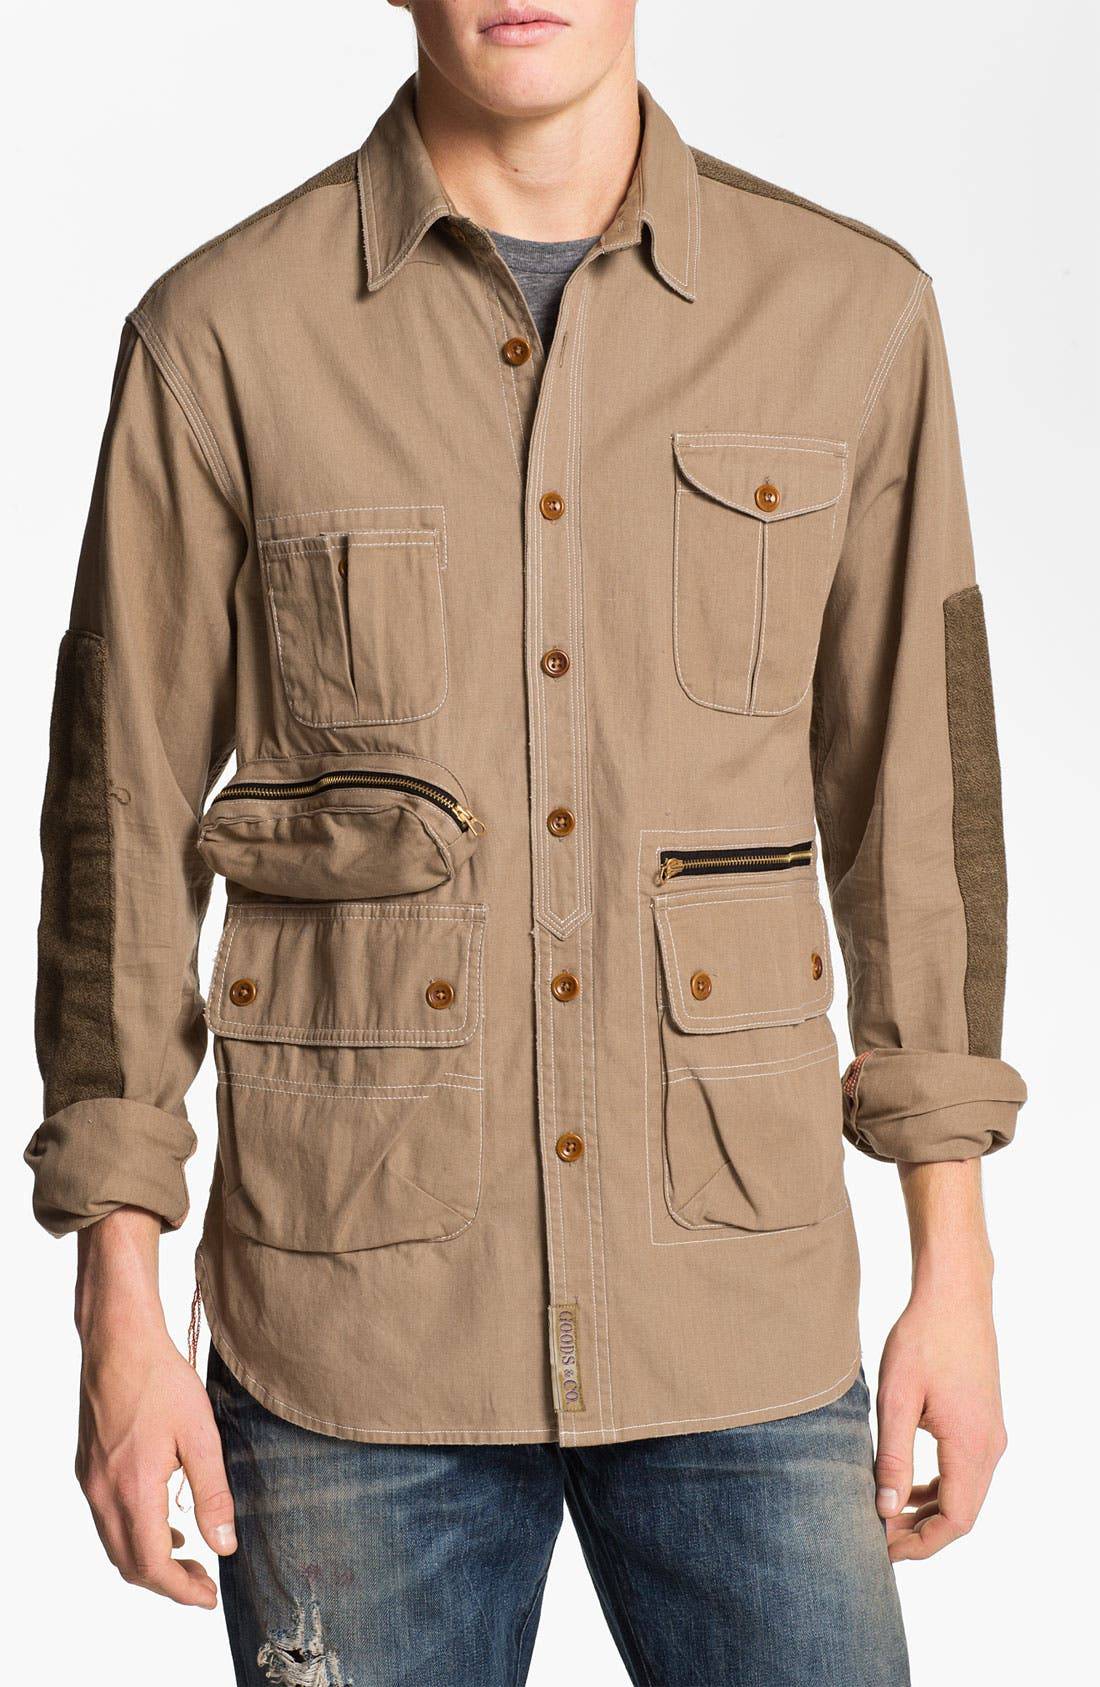 Alternate Image 1 Selected - PRPS 'Utility' Woven Twill Shirt